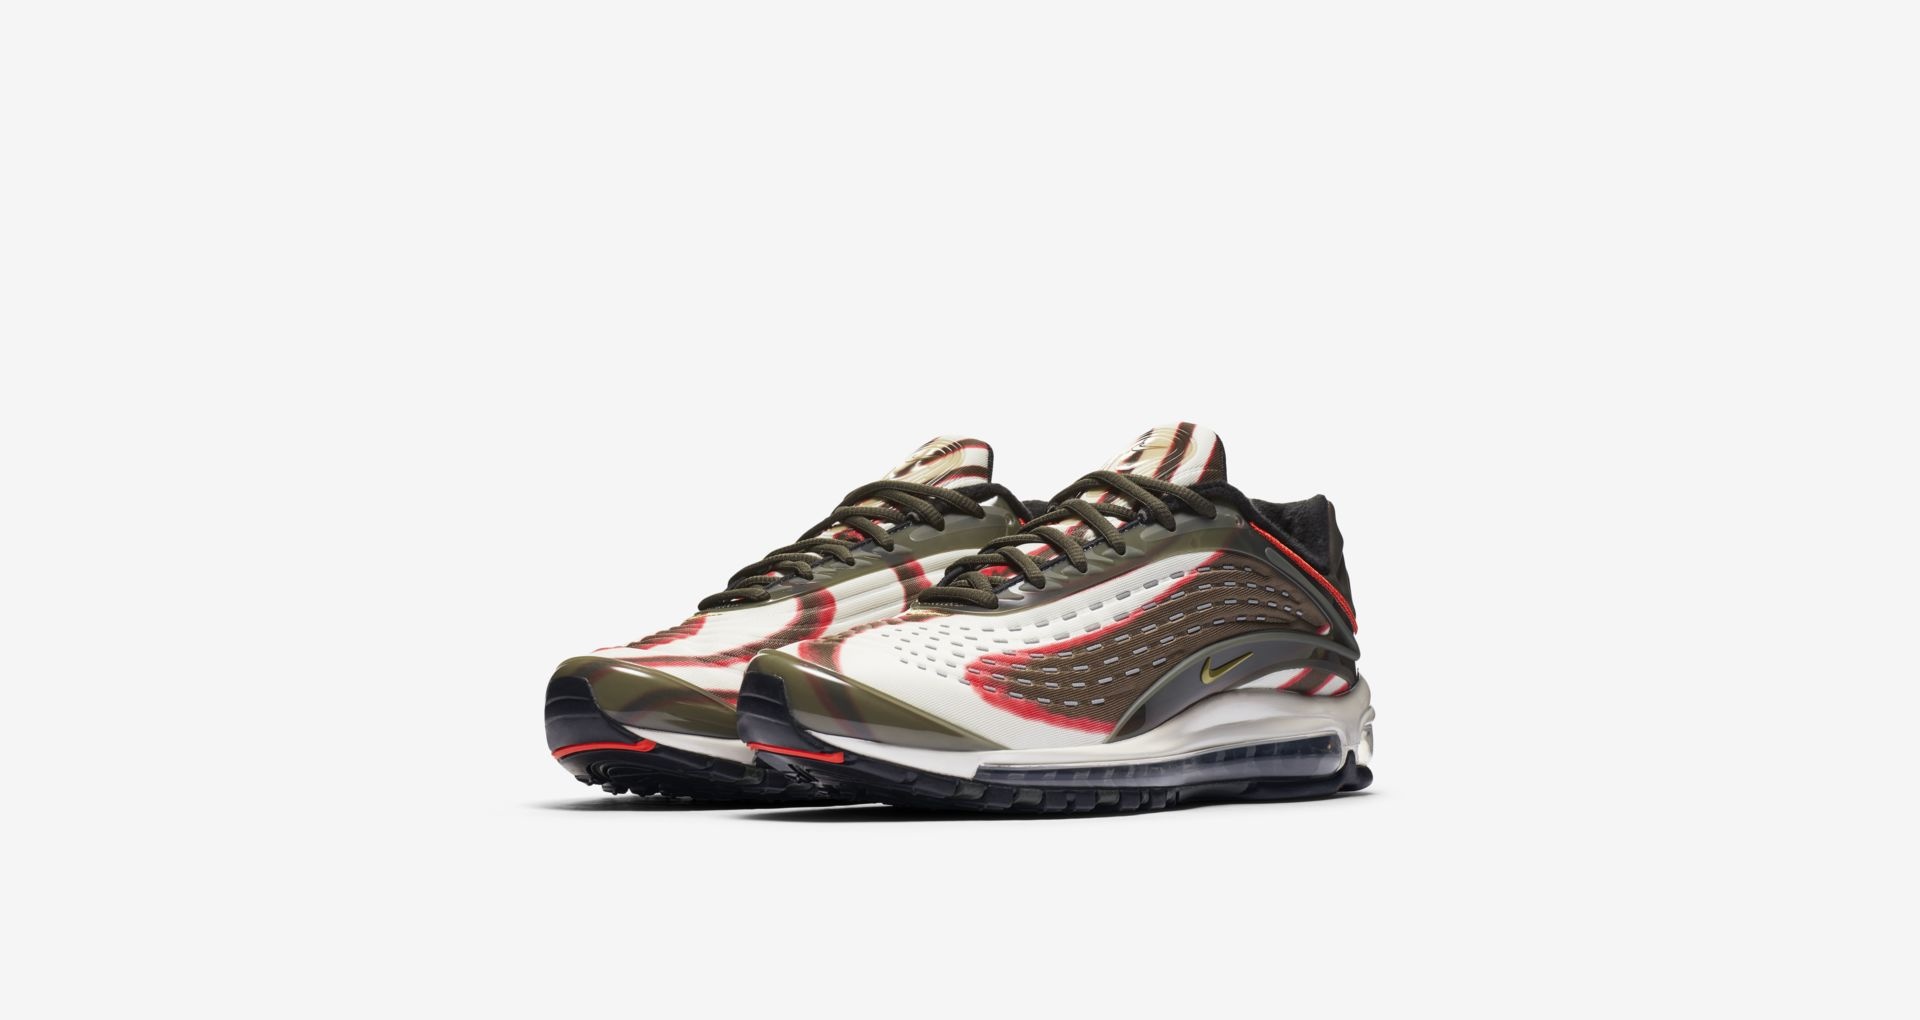 AJ7831 300 Nike Air Max Deluxe Sequoia 4